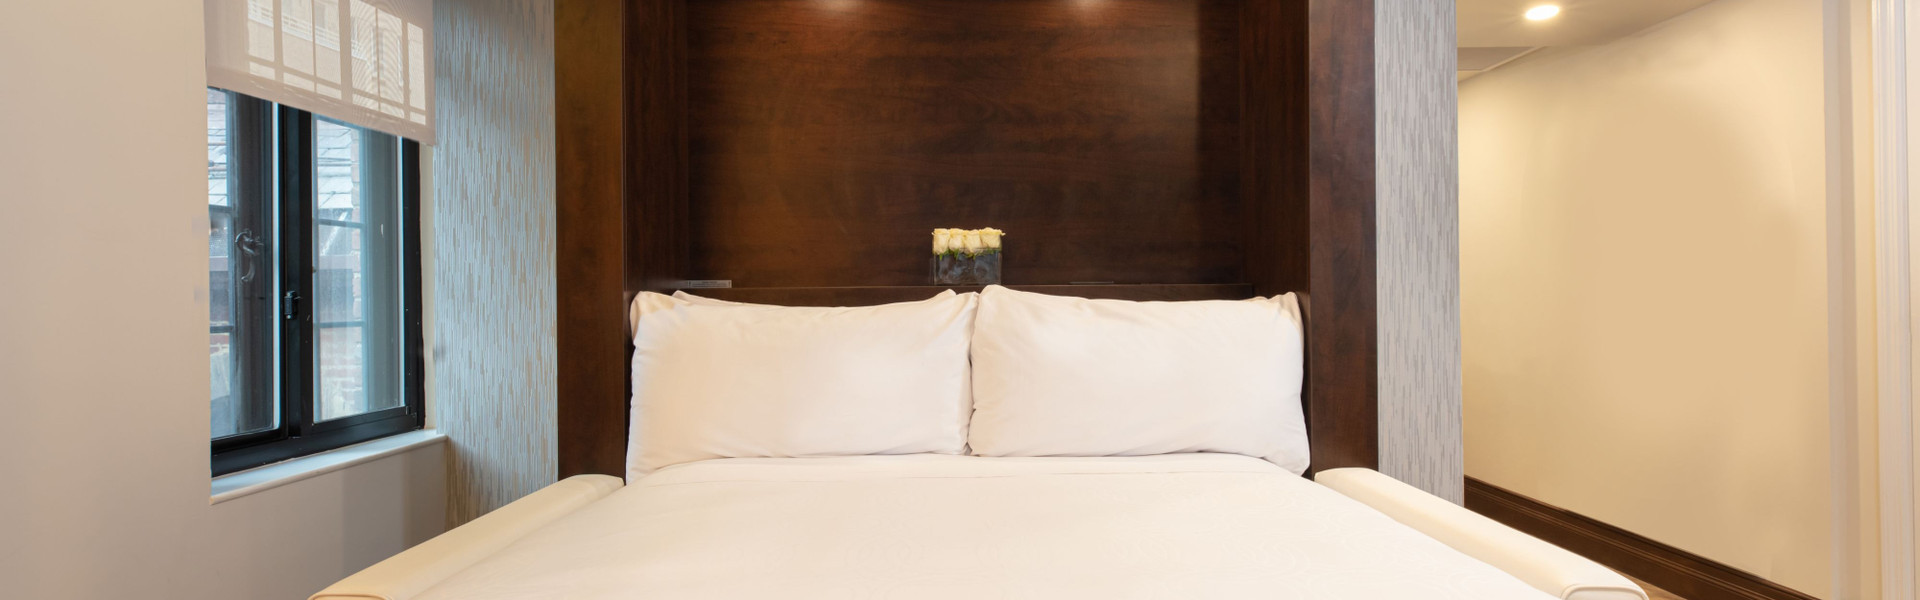 Courtesy Hotel Room Blocks For Your Wedding In NYC | Westgate New York